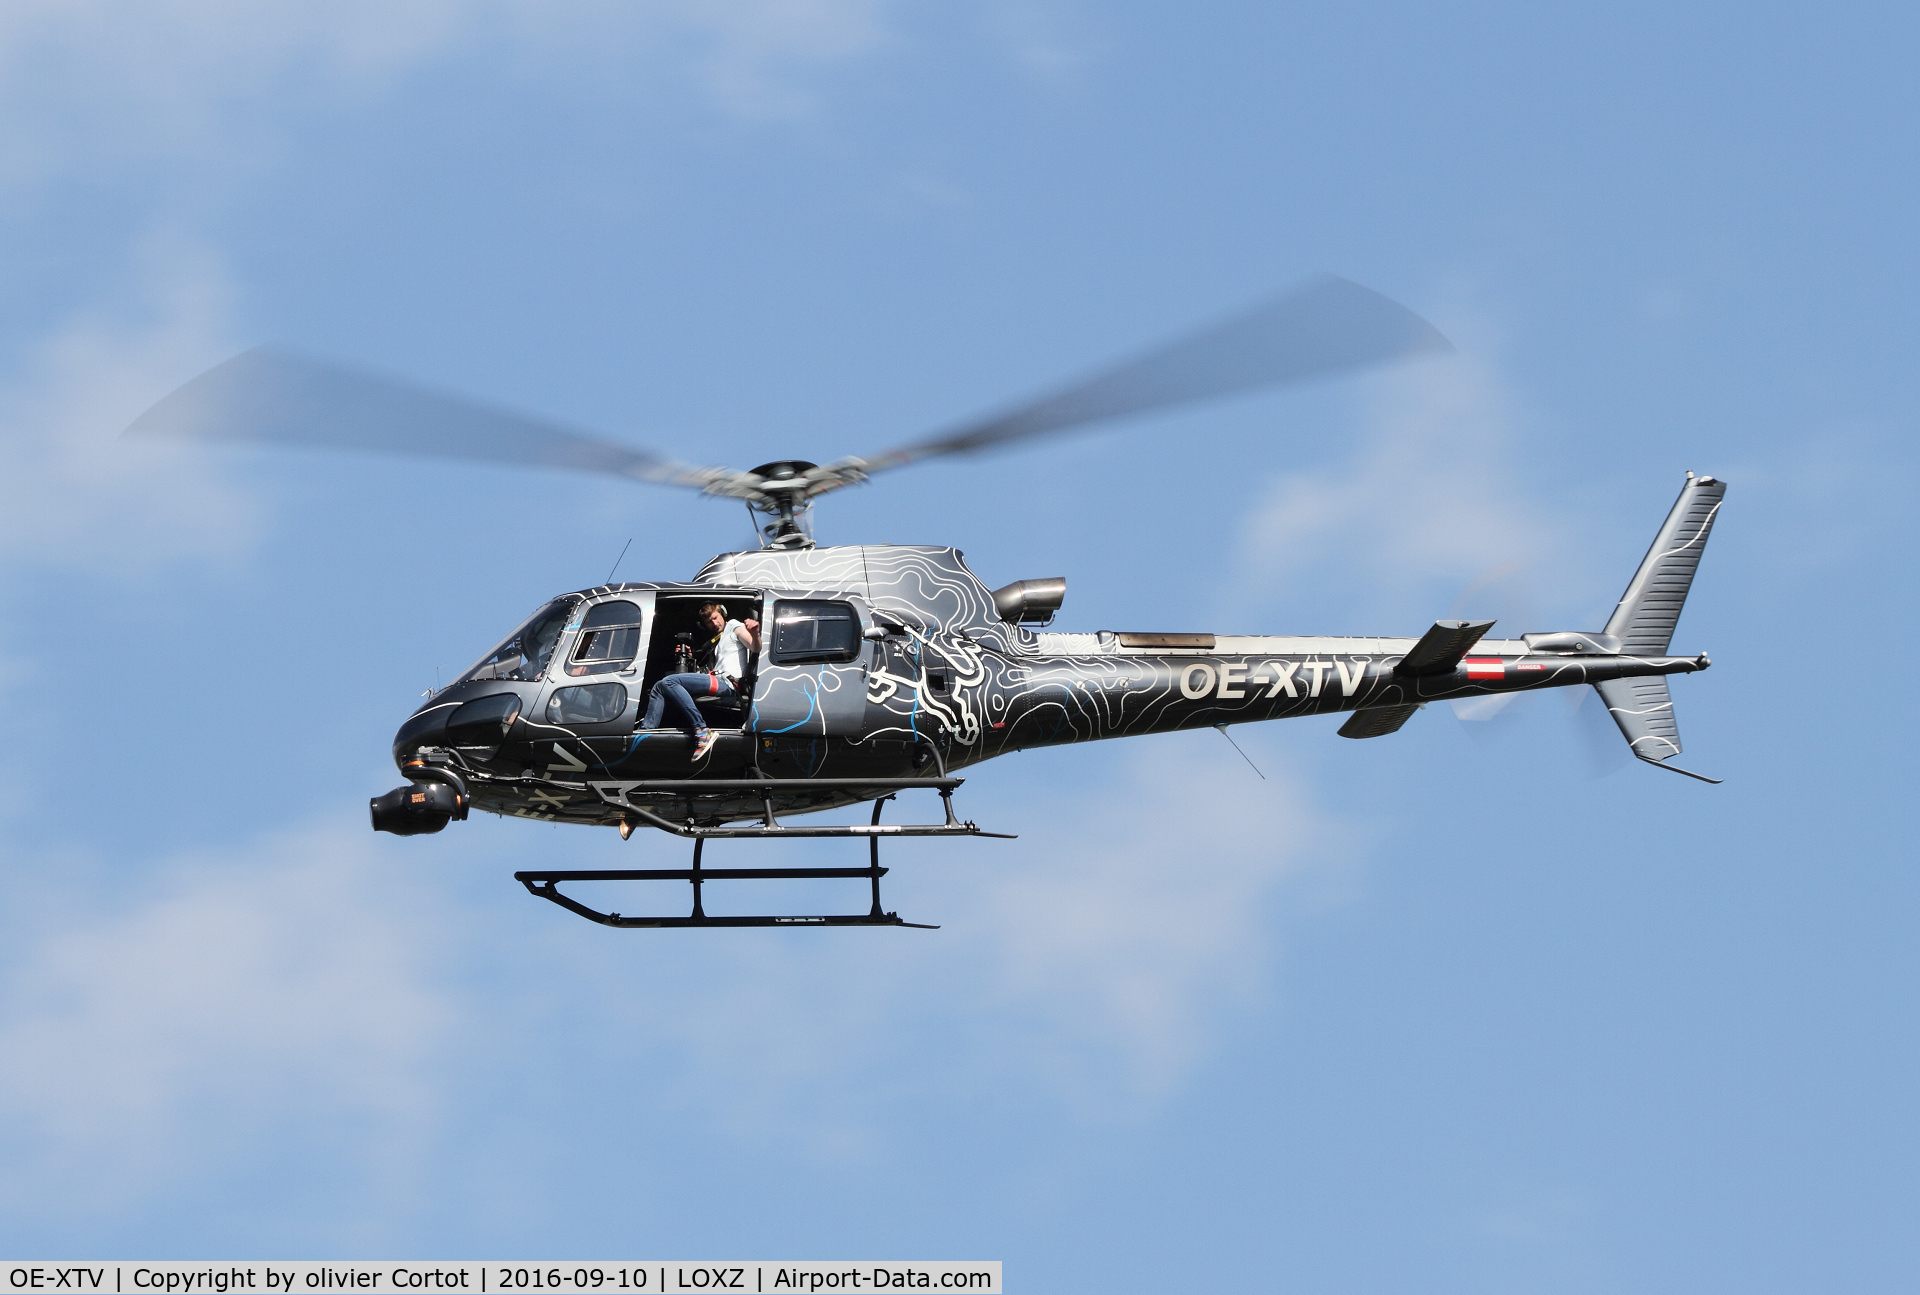 OE-XTV, 2009 Eurocopter AS-350B-3+ Ecureuil C/N 4745, Air Power 16 media helicopter